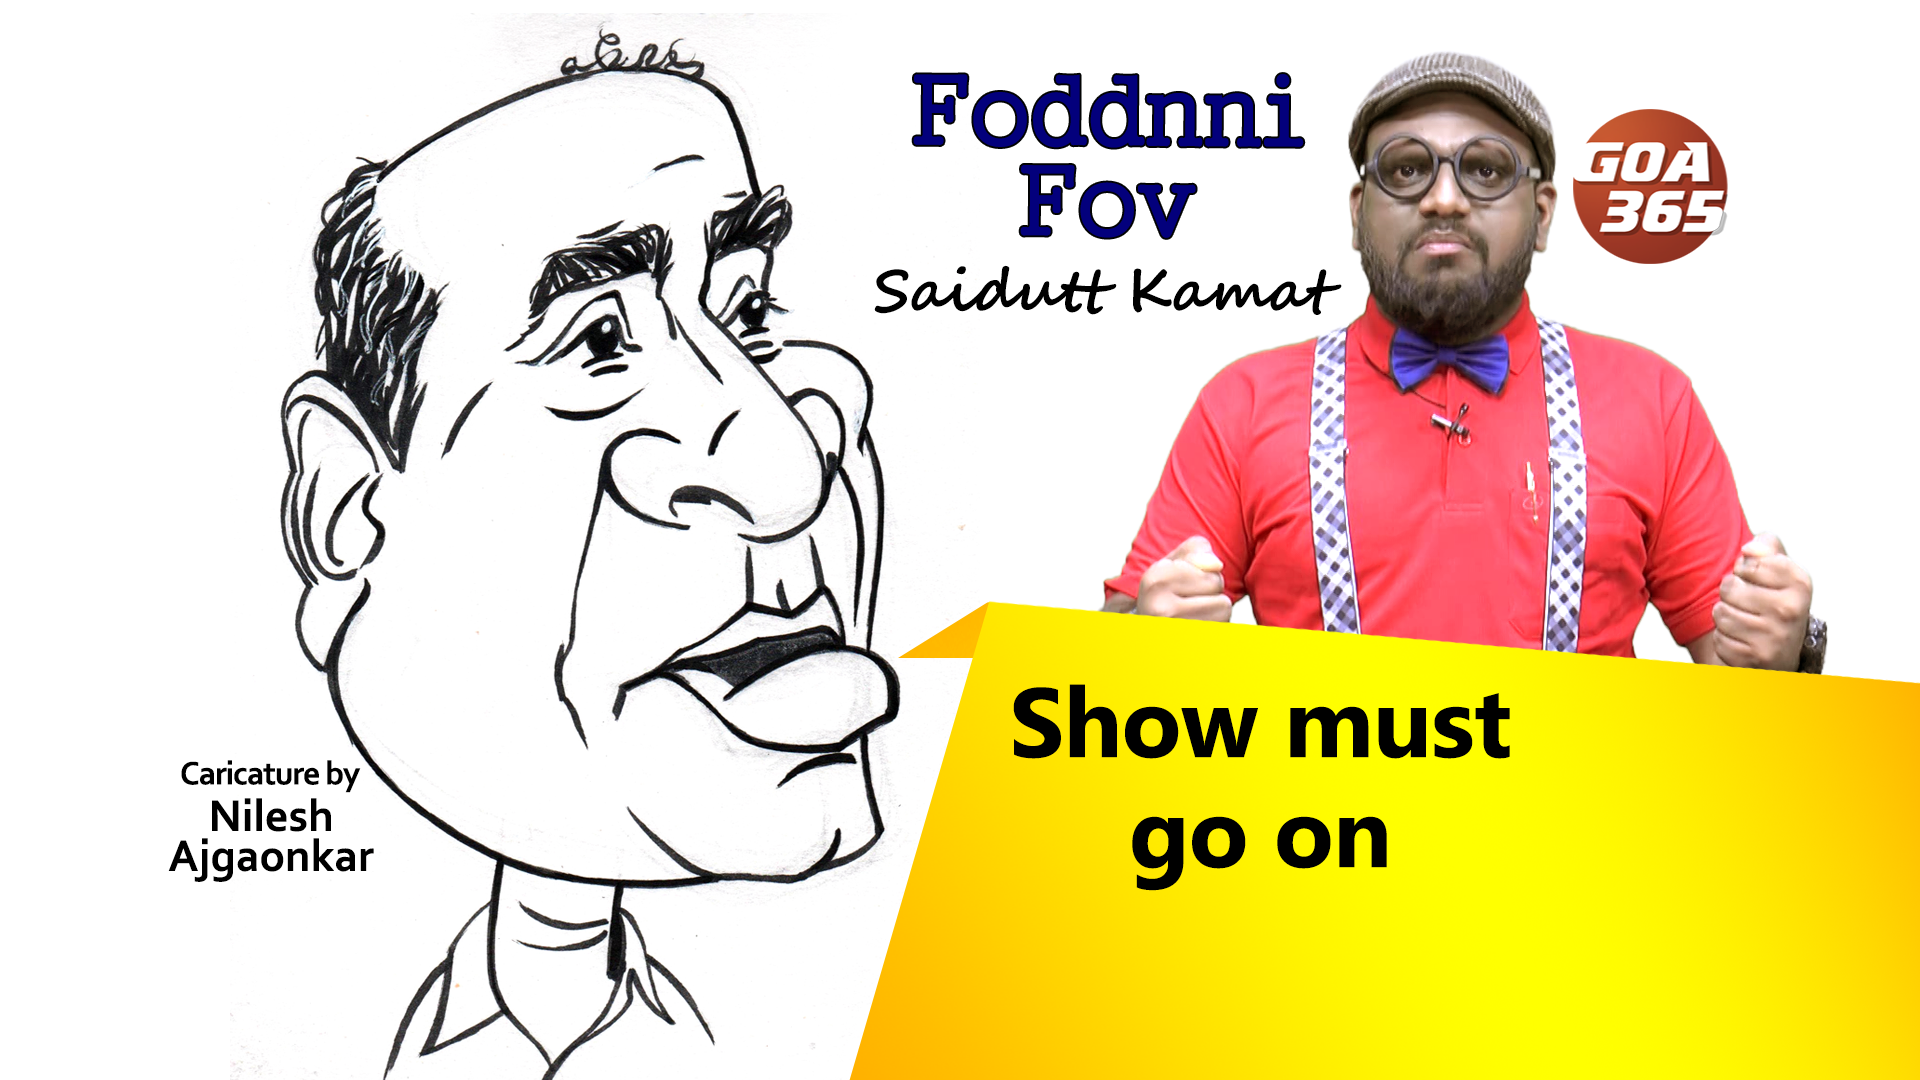 FODDNNI FOV : Show must go on